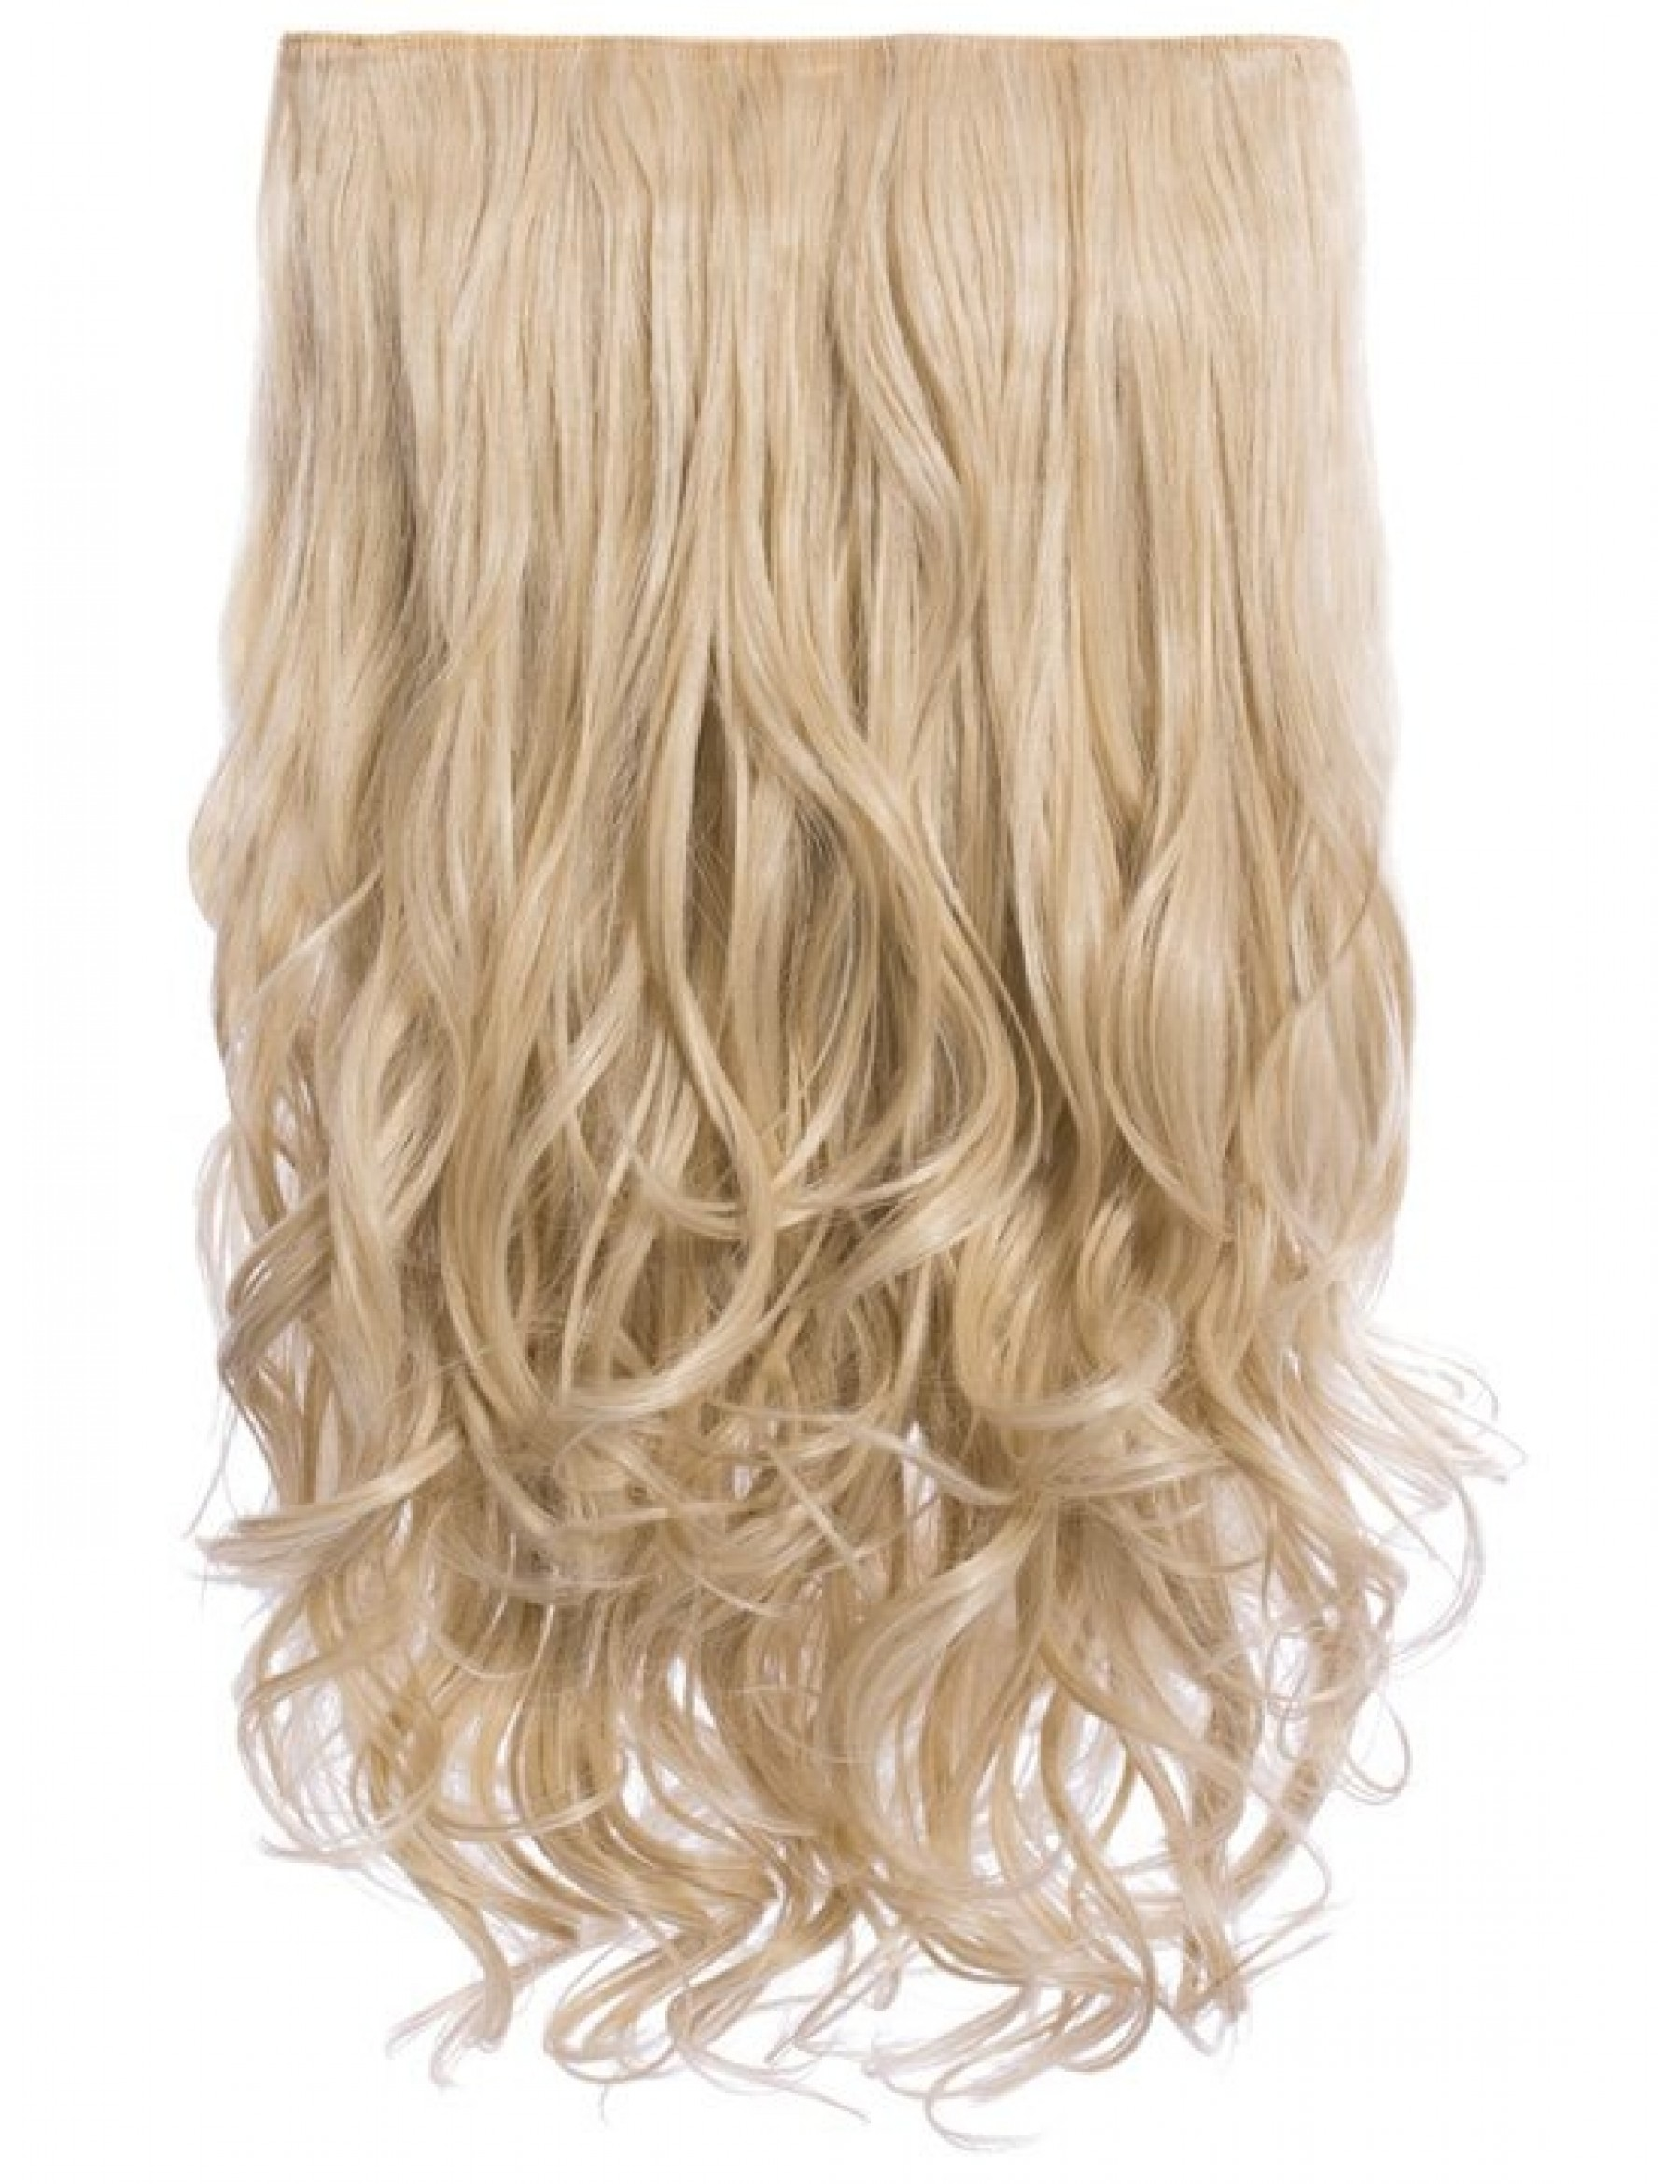 Selena 1 Weft Curly 20 Hair Extensions In Light Golden Blonde